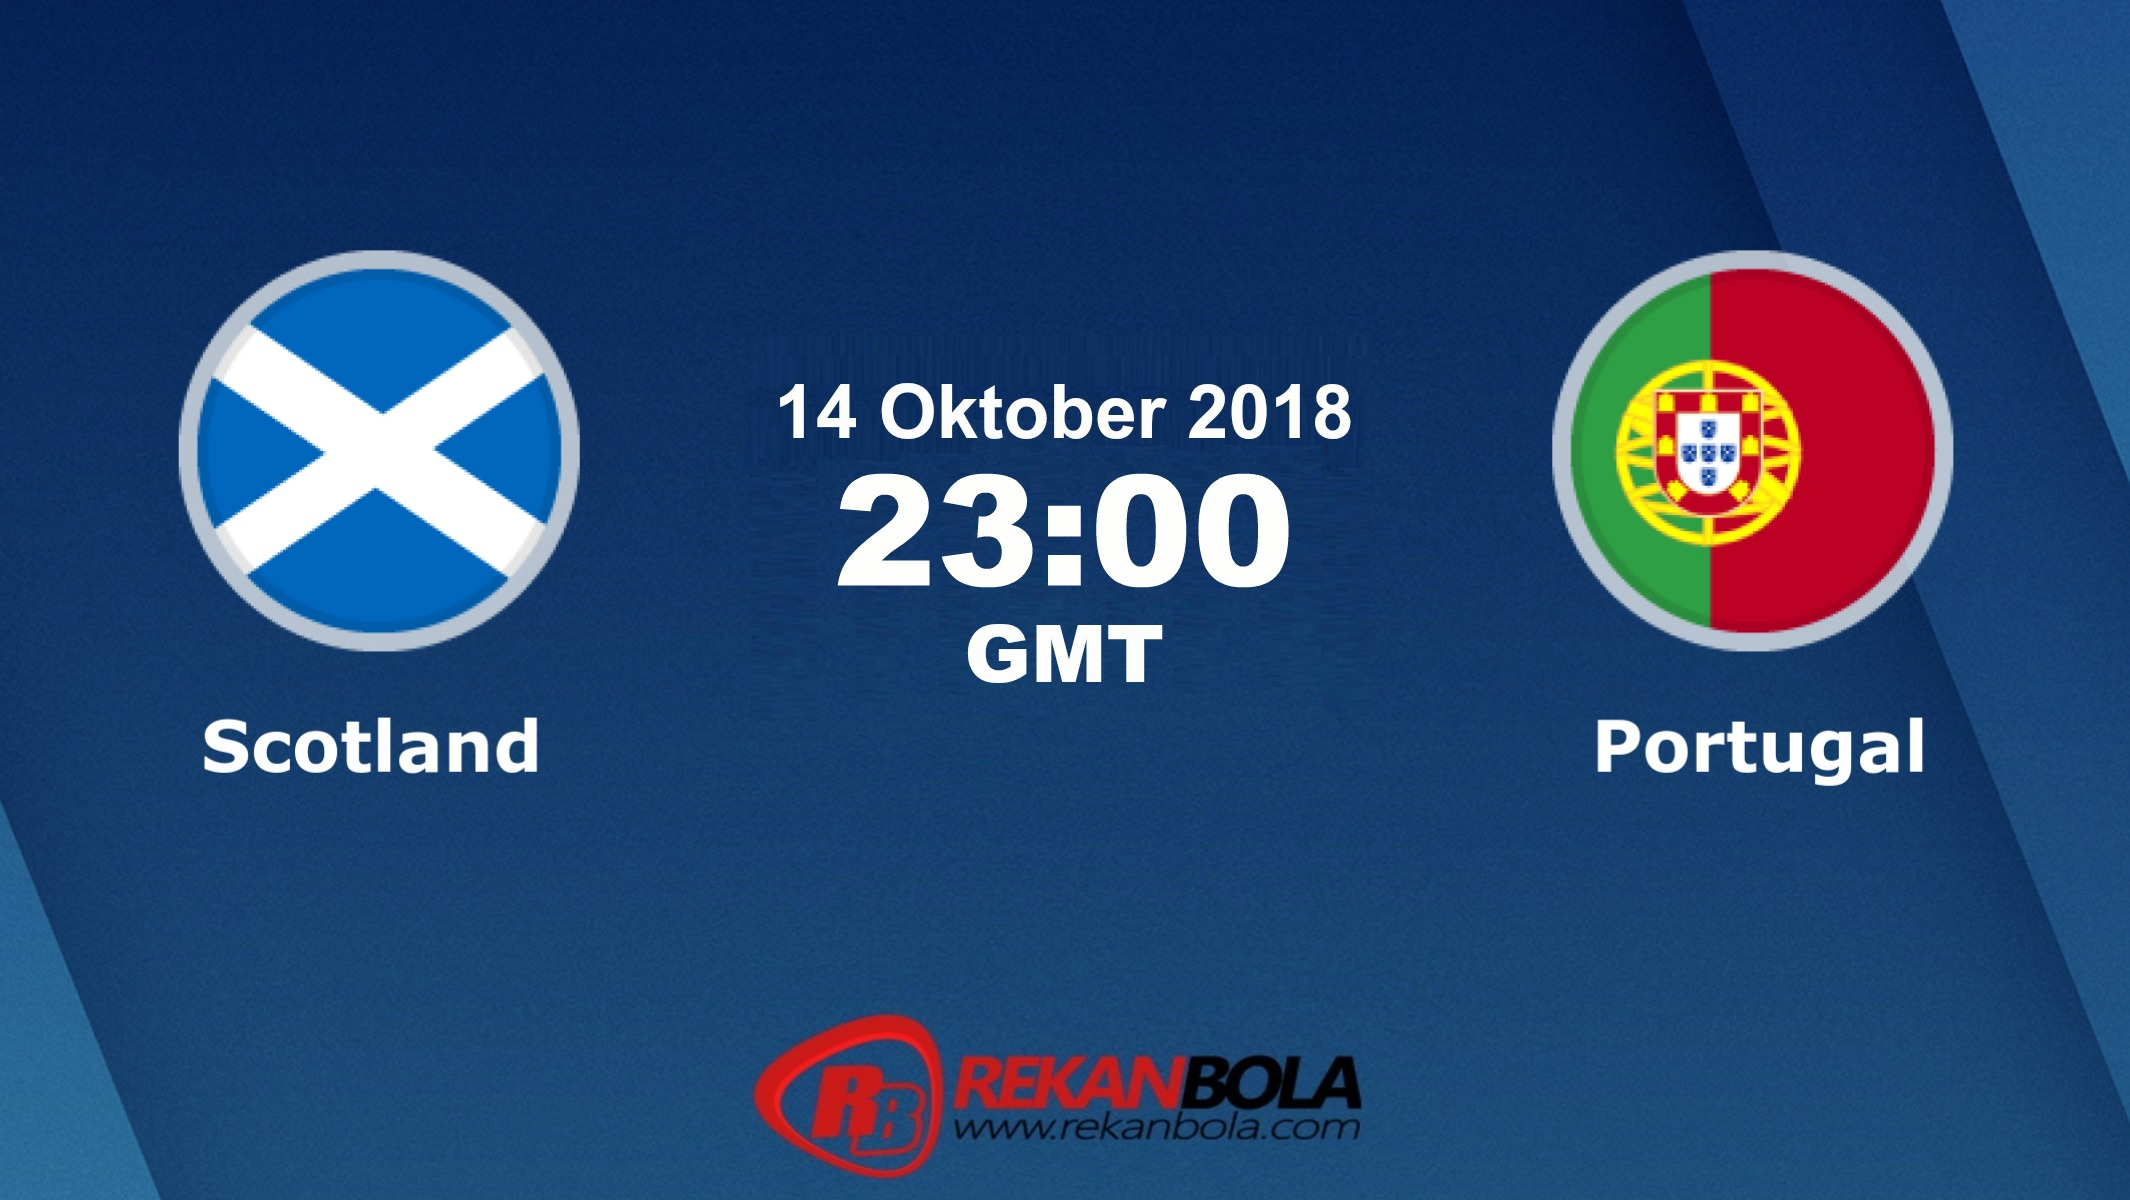 Nonton Siaran Live Streaming Skotlandia Vs Portugal 14 Oktober 2018